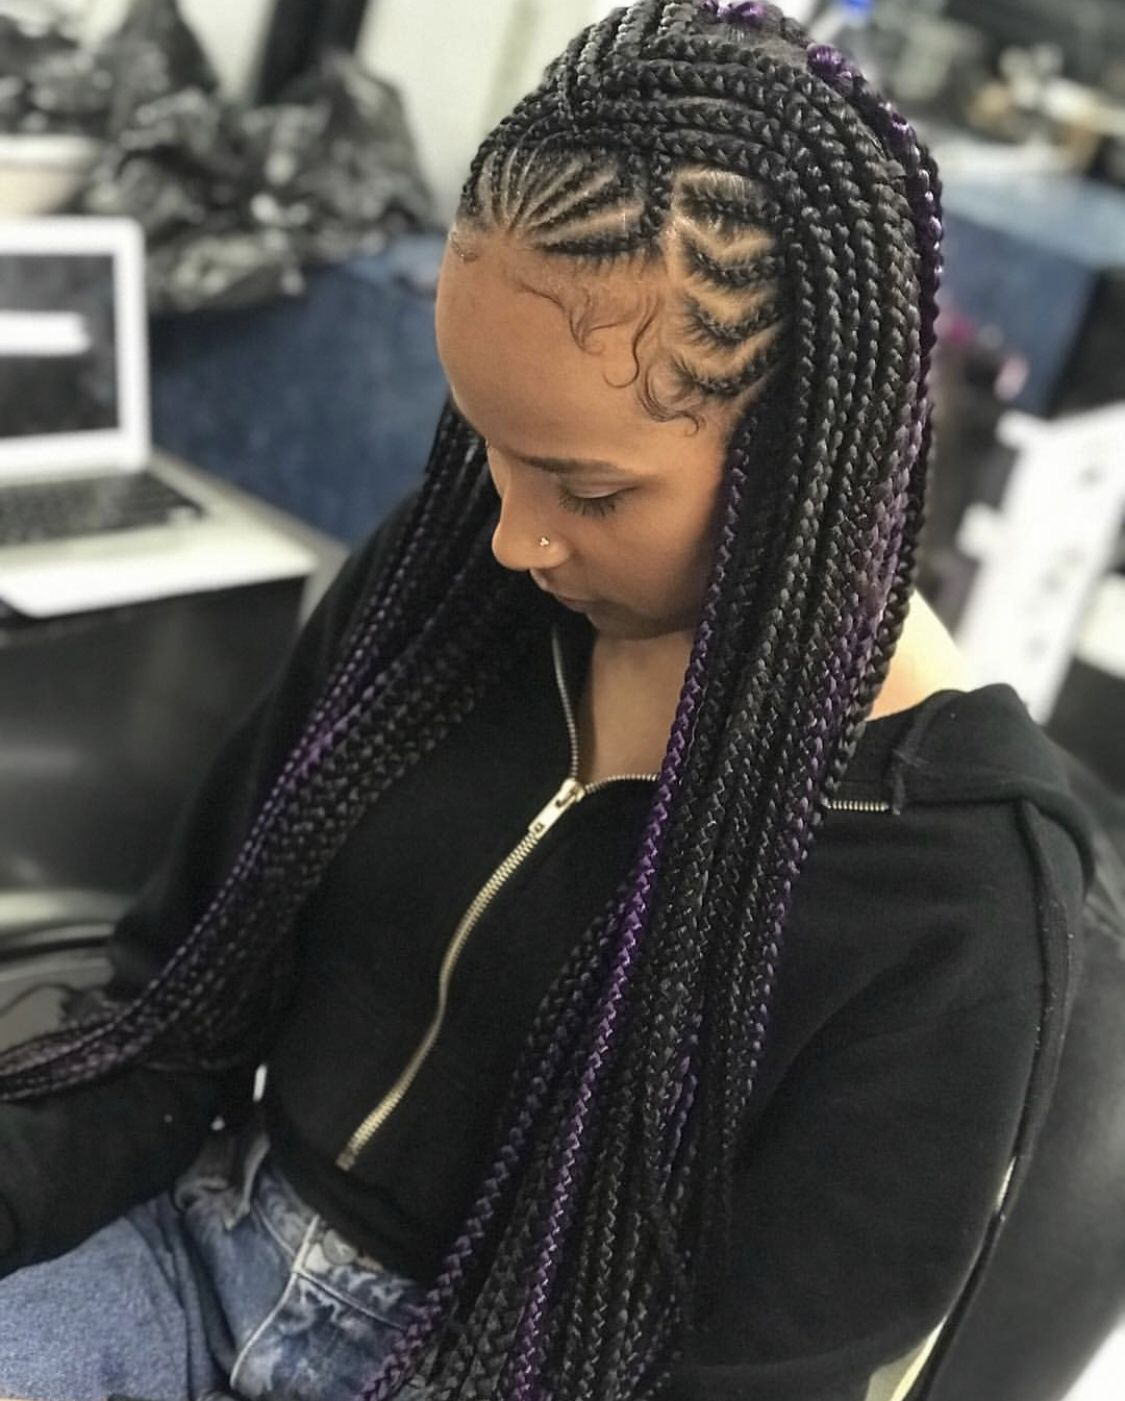 Beautiful Braided Hairstyles 2021 hairstyleforblackwomen.net 52